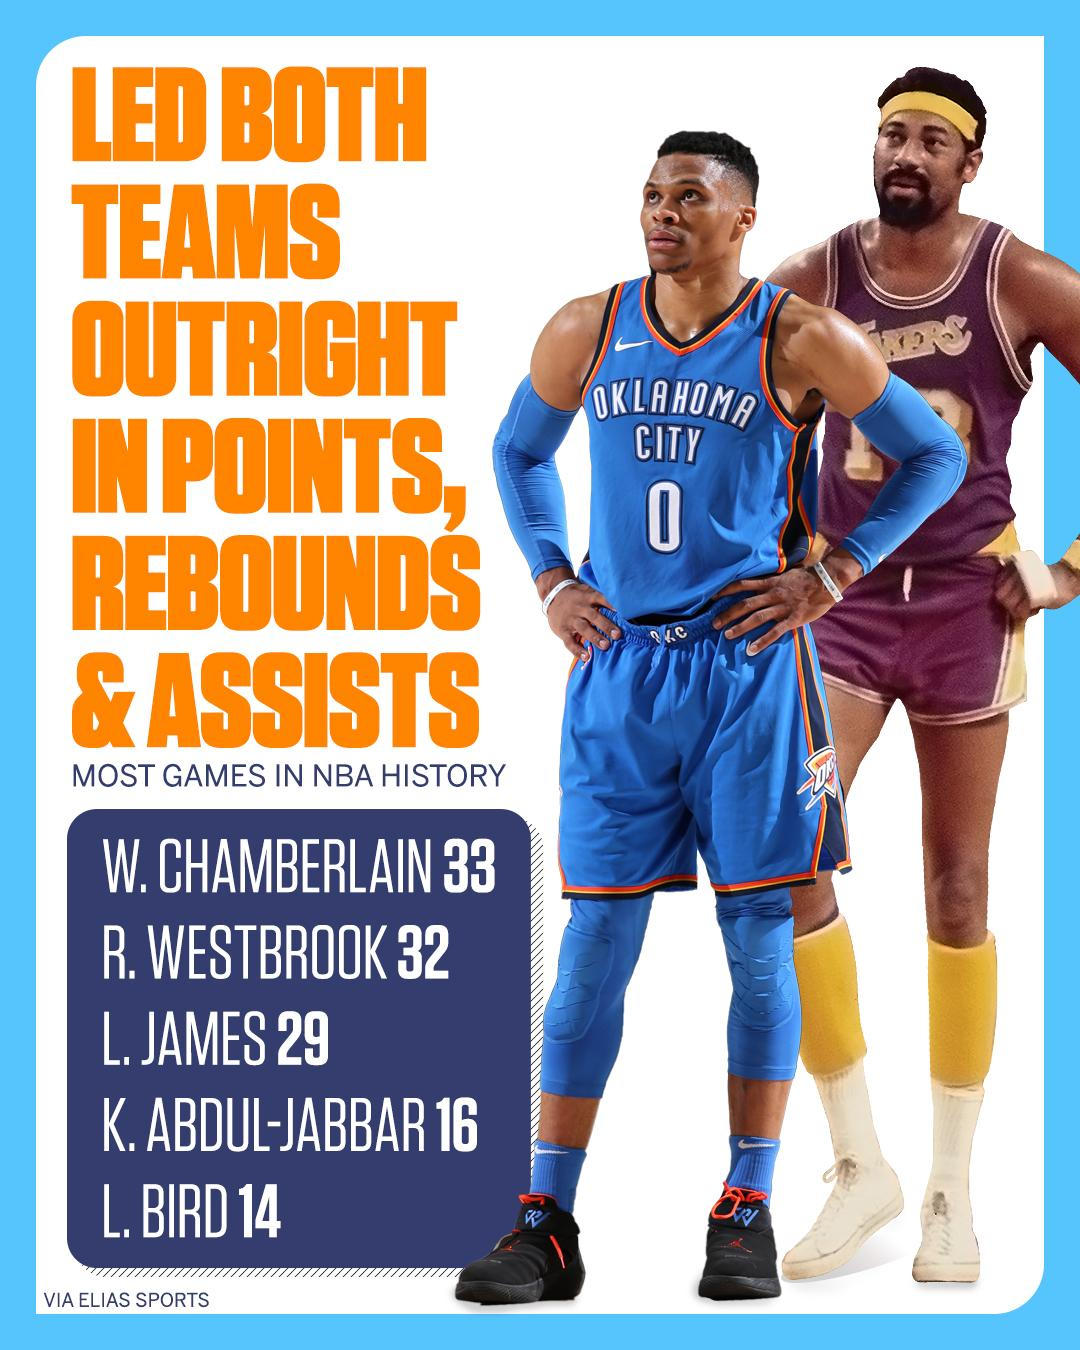 Russ is closing in on another Wilt milestone. https://t.co/qtCsDrtIPN